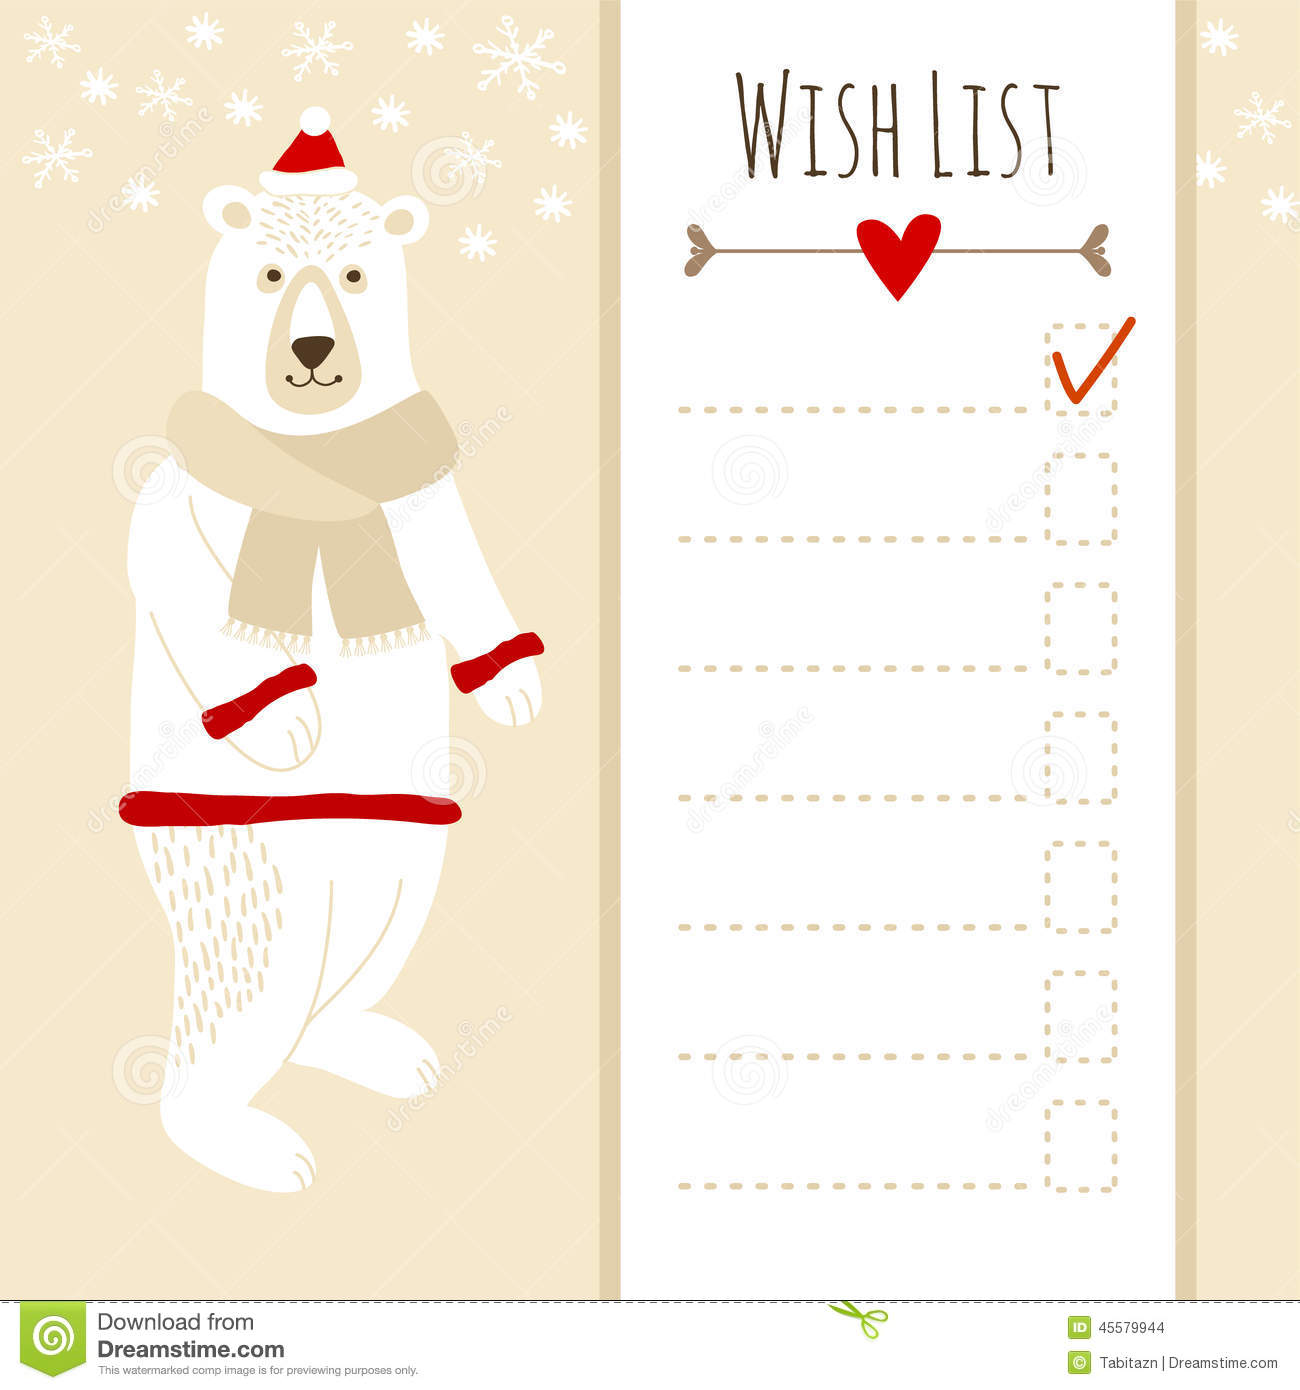 download wish list - Dorit.mercatodos.co